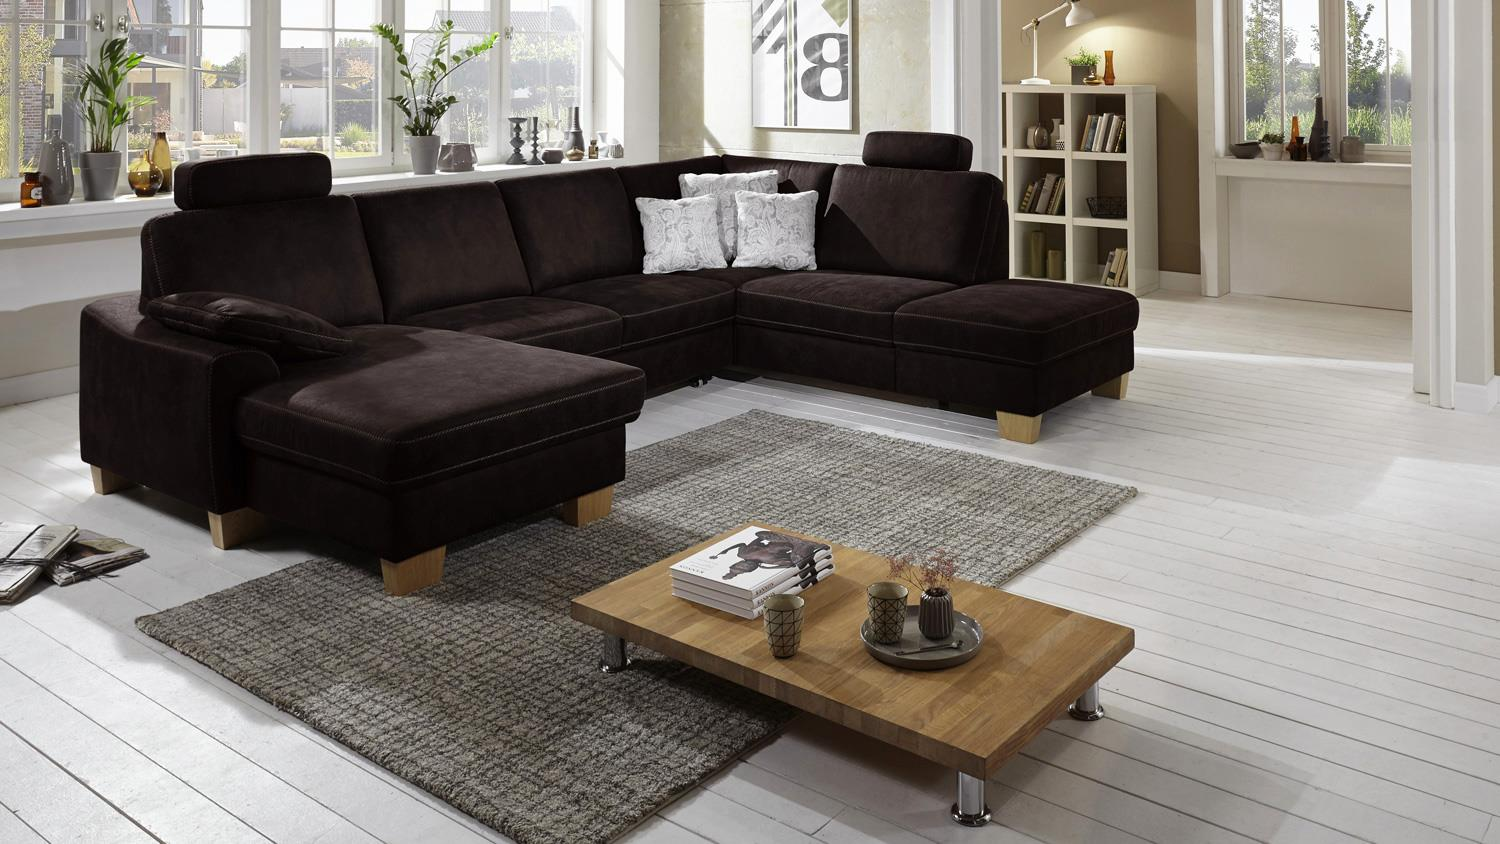 wohnlandschaft stick microfaser espresso braun mit federkern 313x235. Black Bedroom Furniture Sets. Home Design Ideas